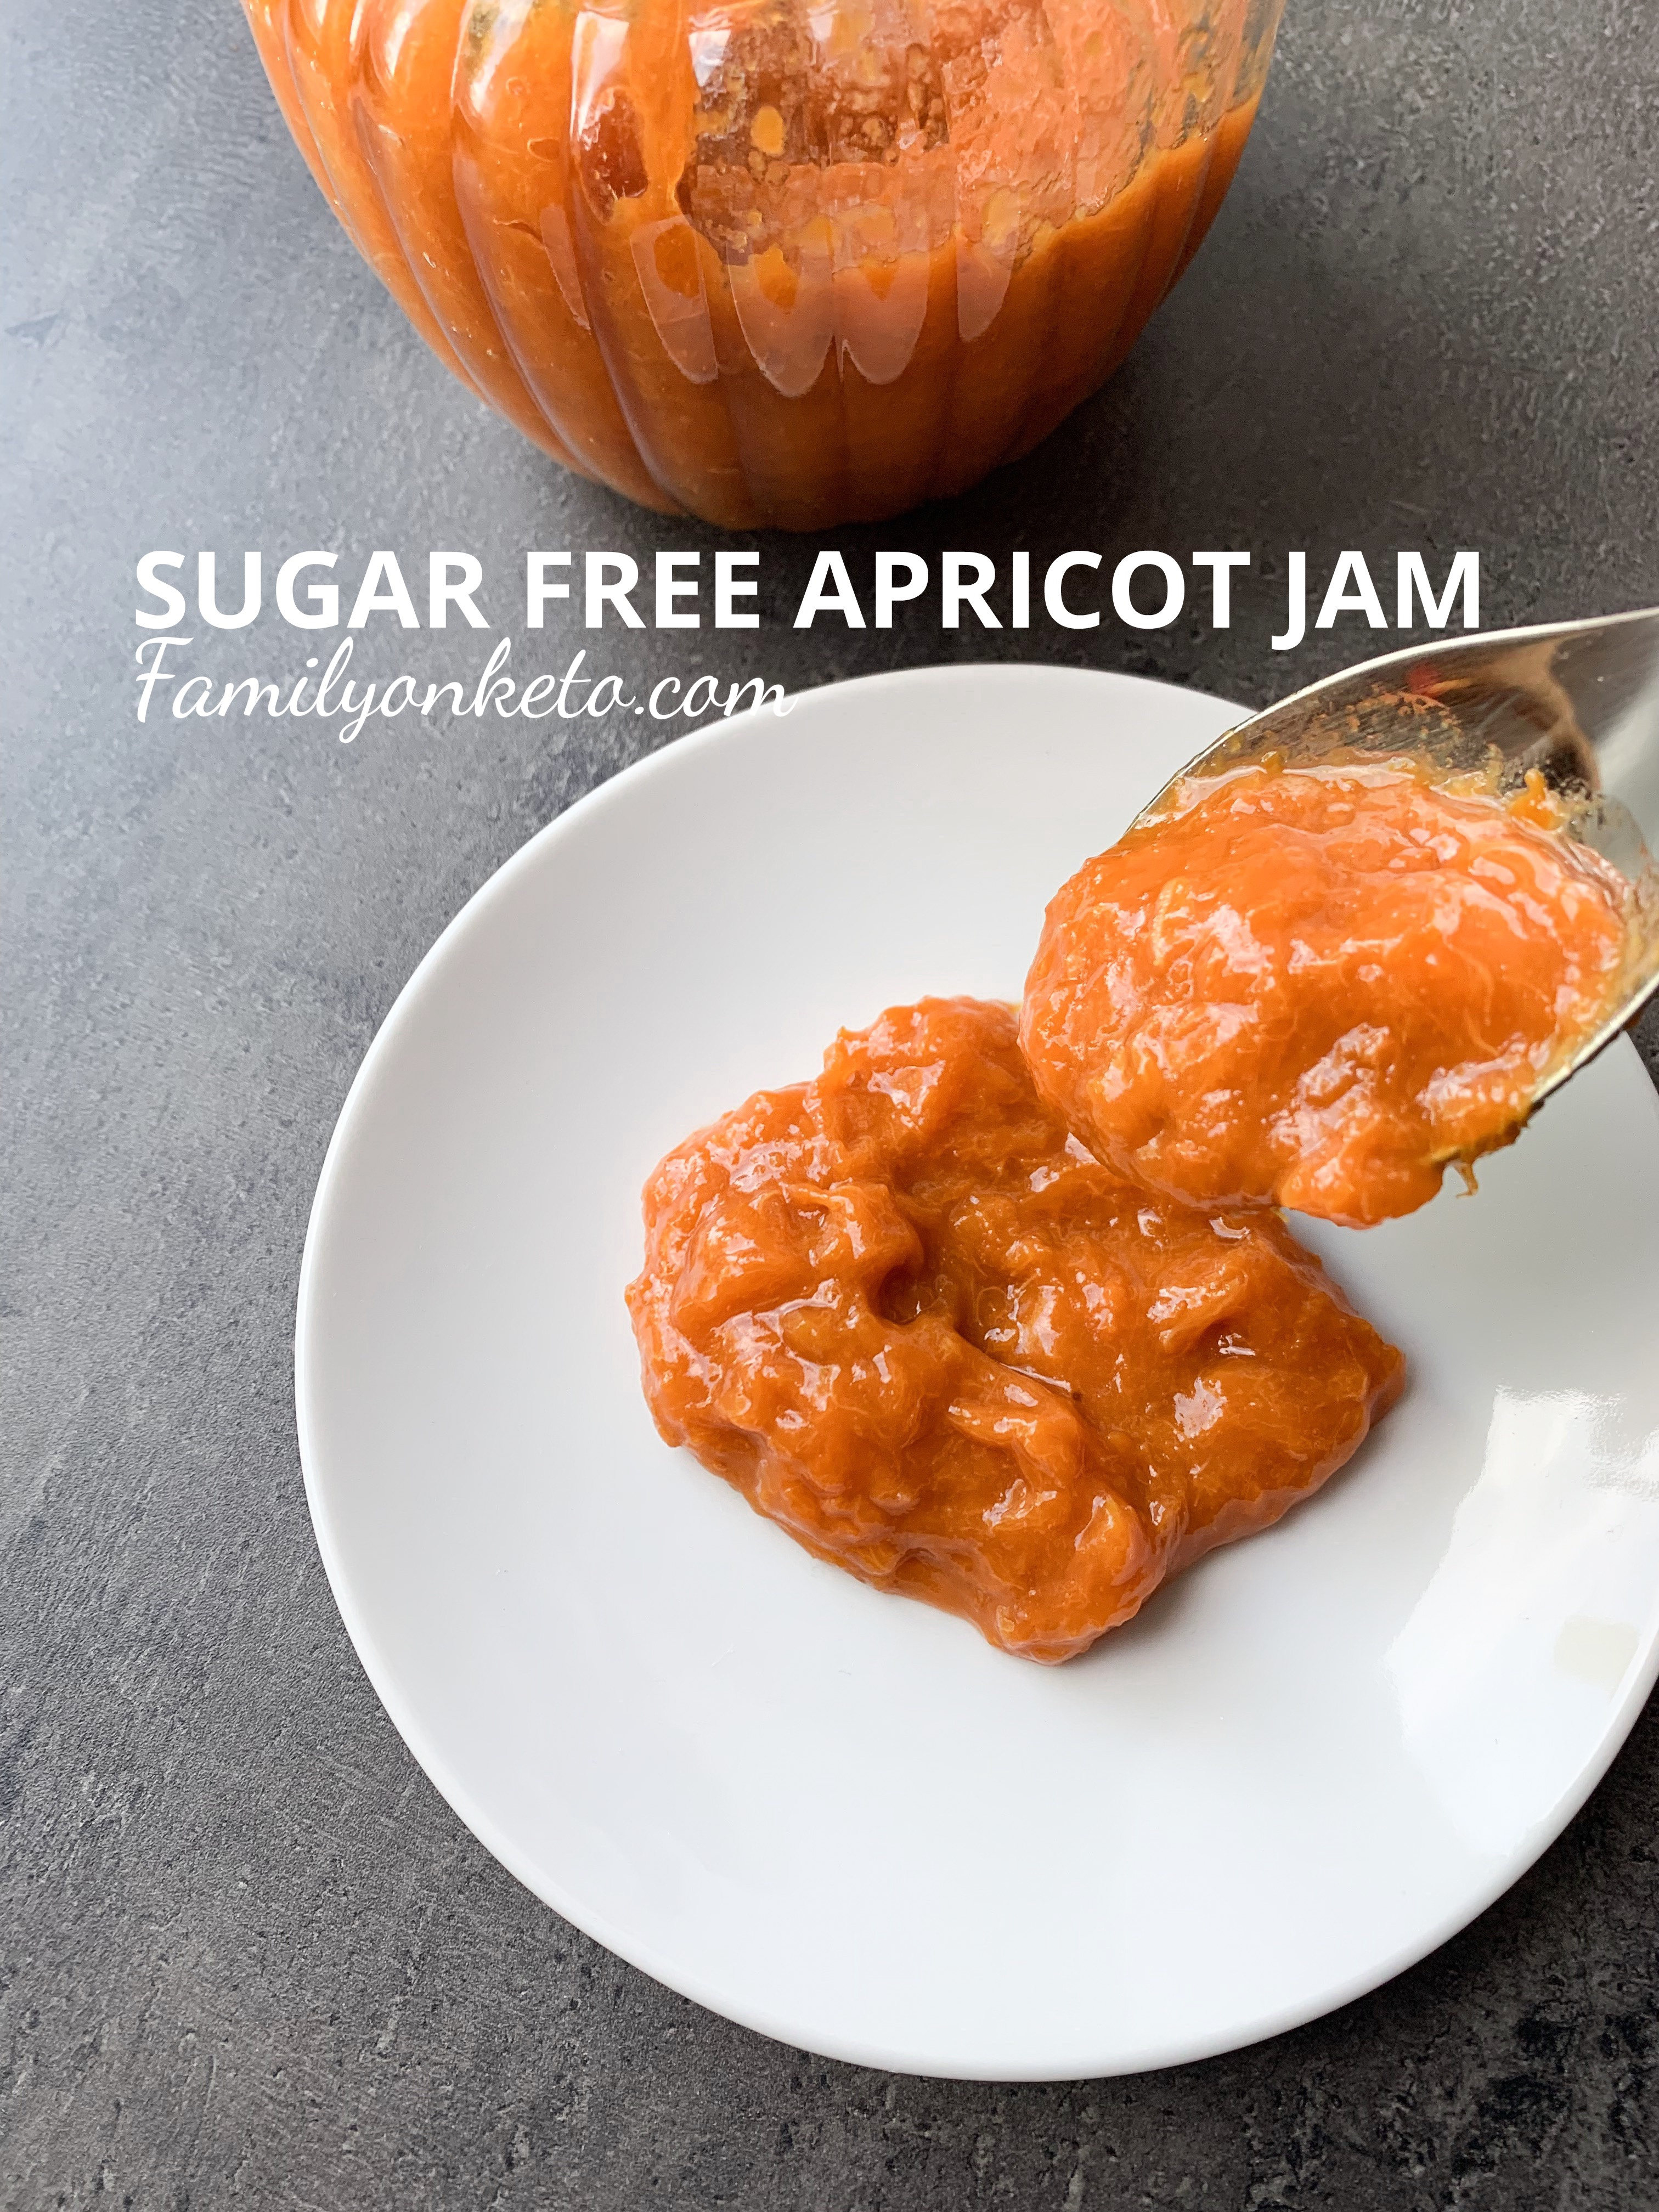 Picture of sugar free apricot jam in a spoon and on a plate